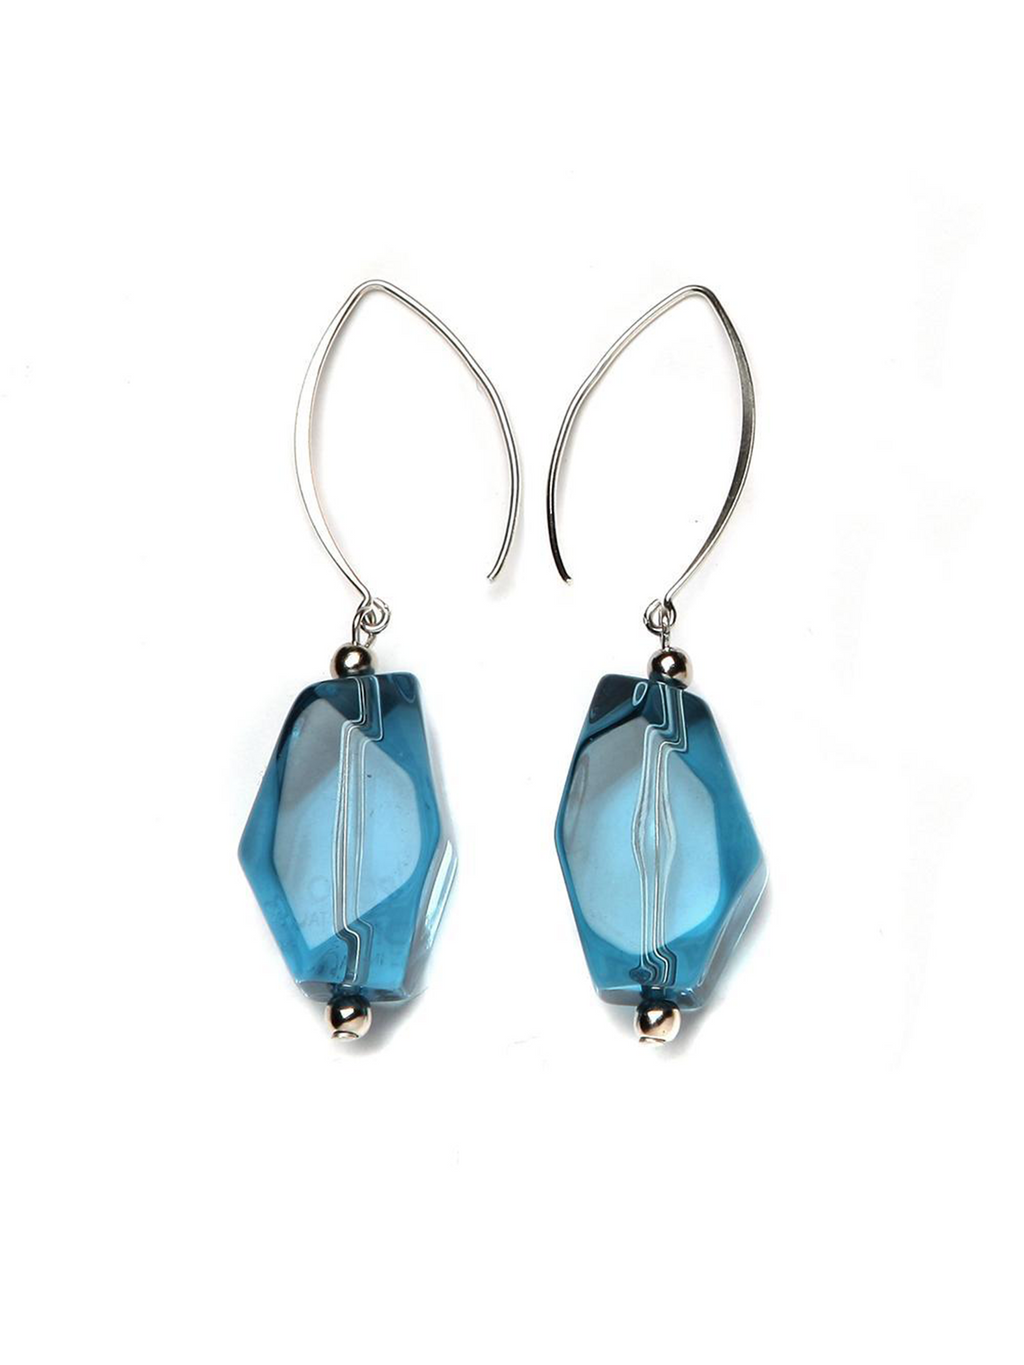 PONO Yvettle Resin Drop Earrings